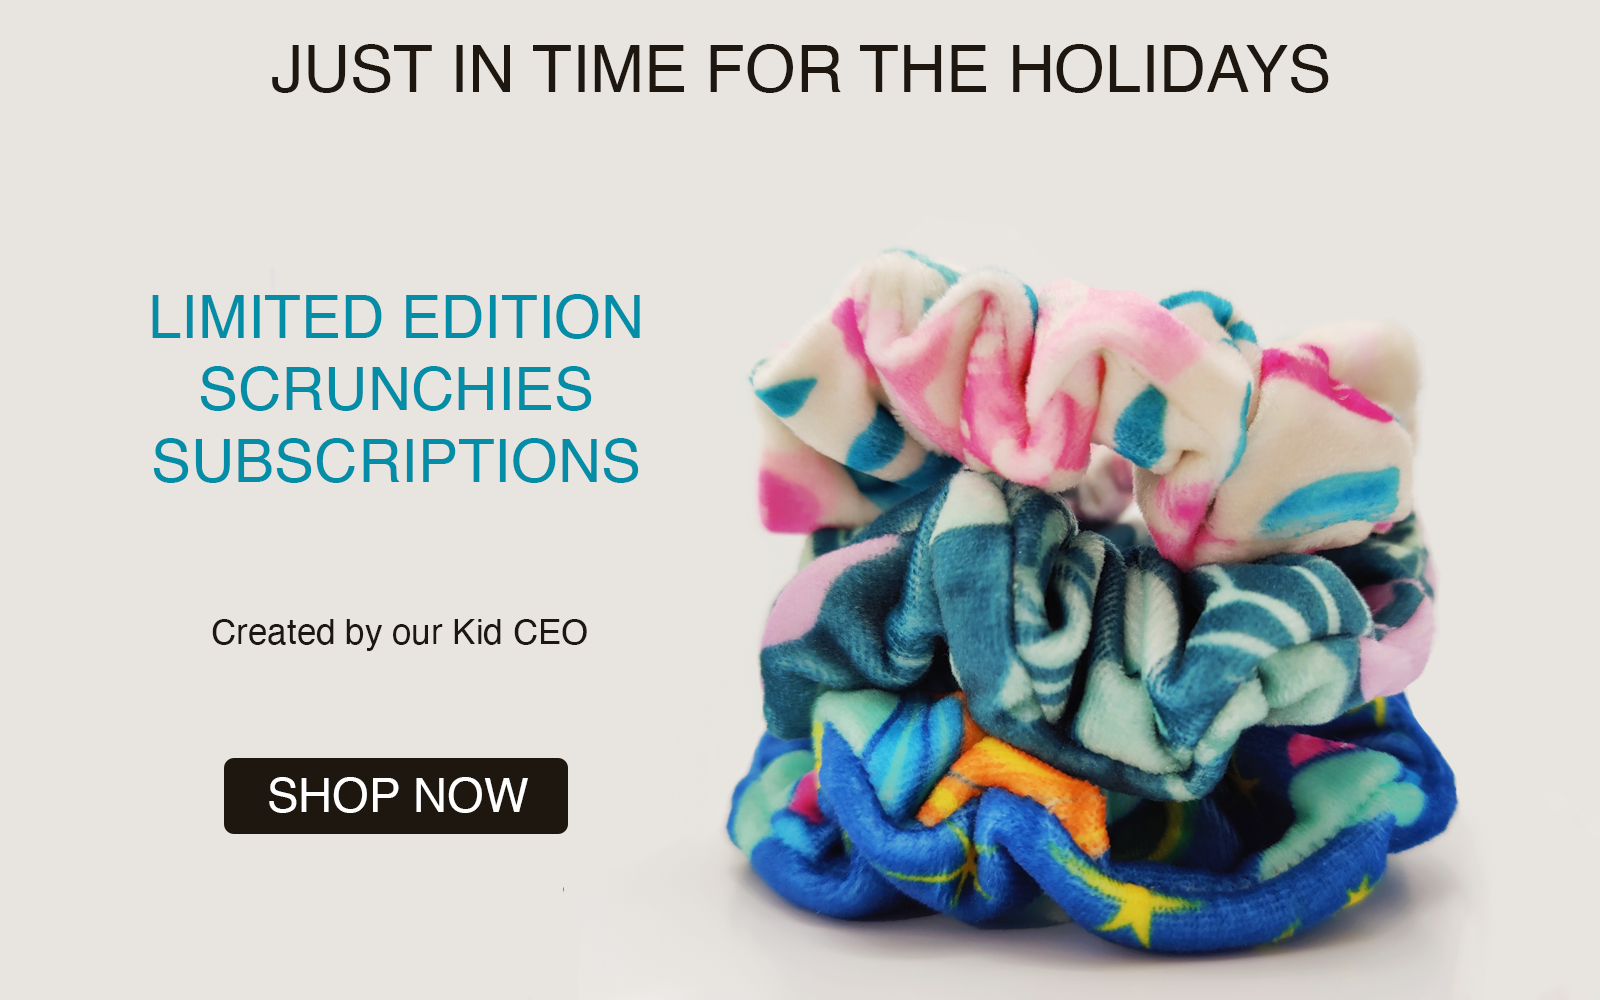 just in time for the holidays - limited edition scrunchies subscriptions